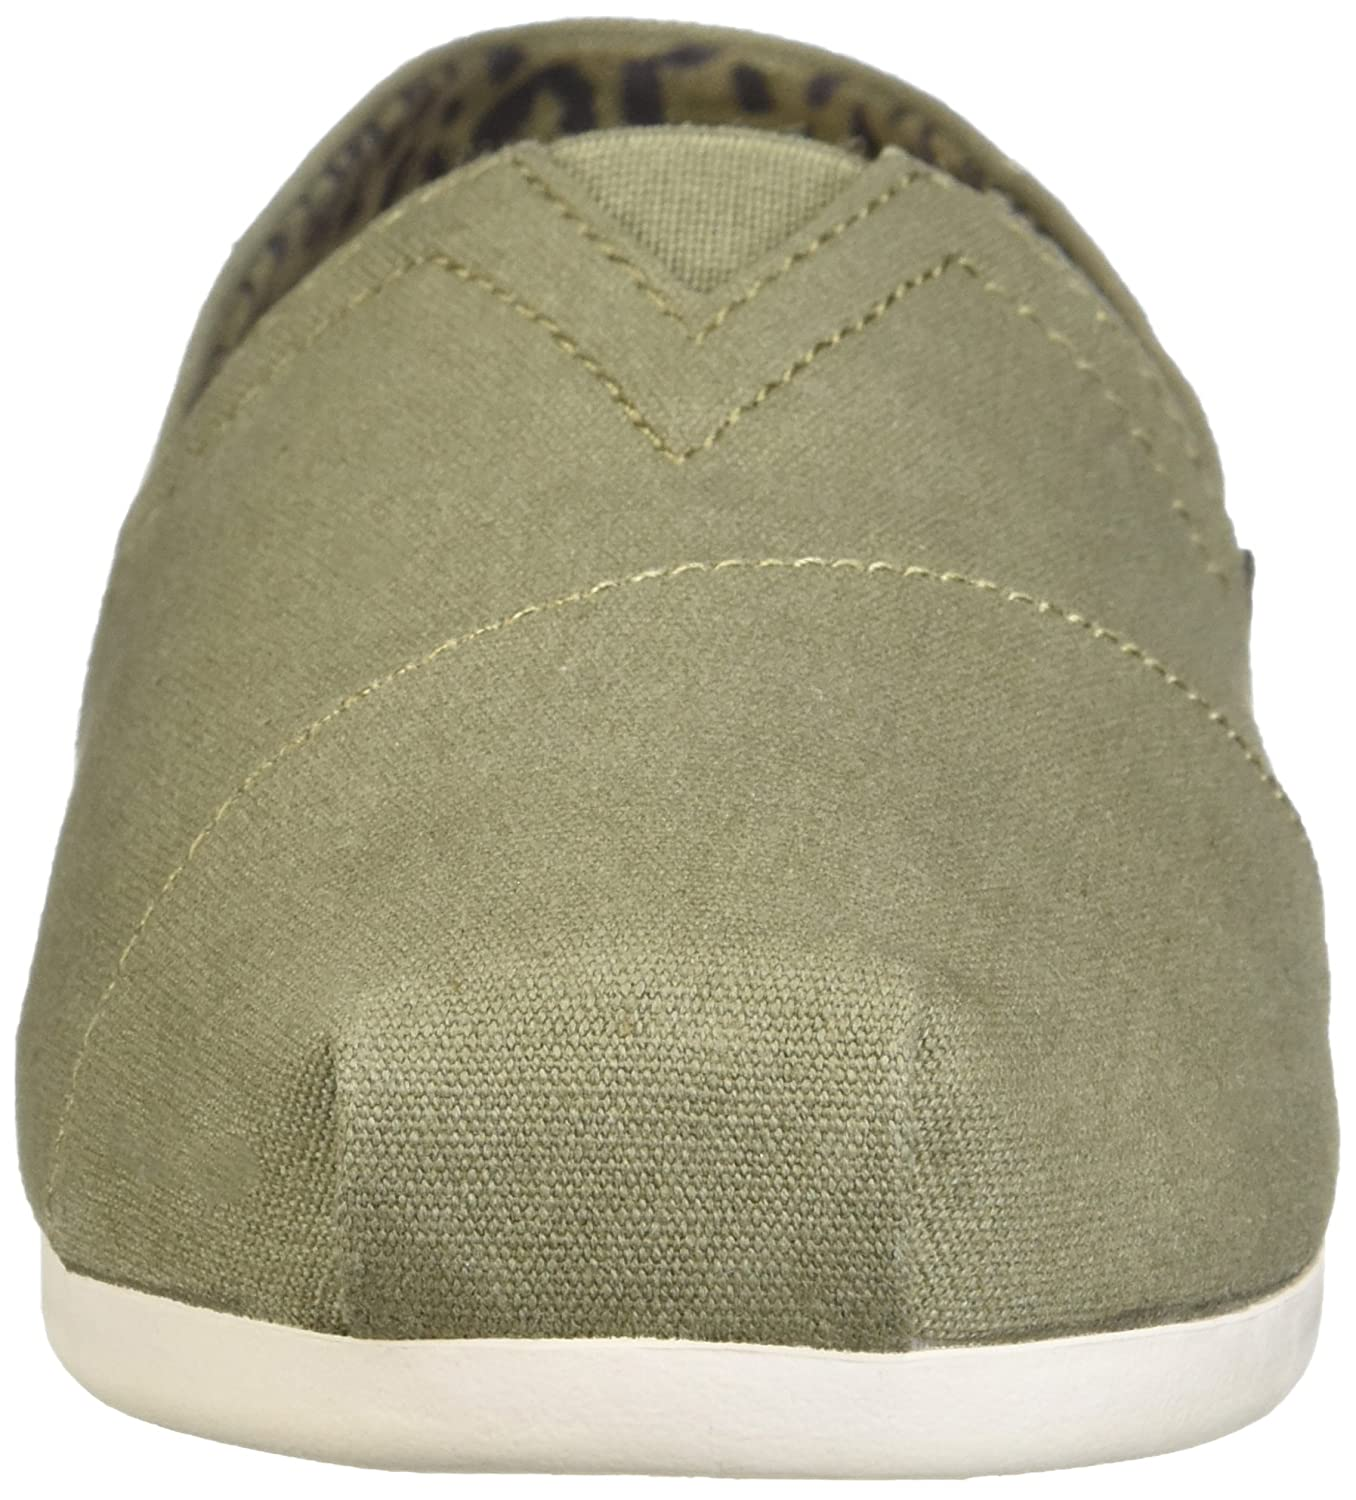 Skechers BOBS from Women's Bobs 9 Plush-Peace and Love B077THYWT3 9 Bobs M US|Olive d70084